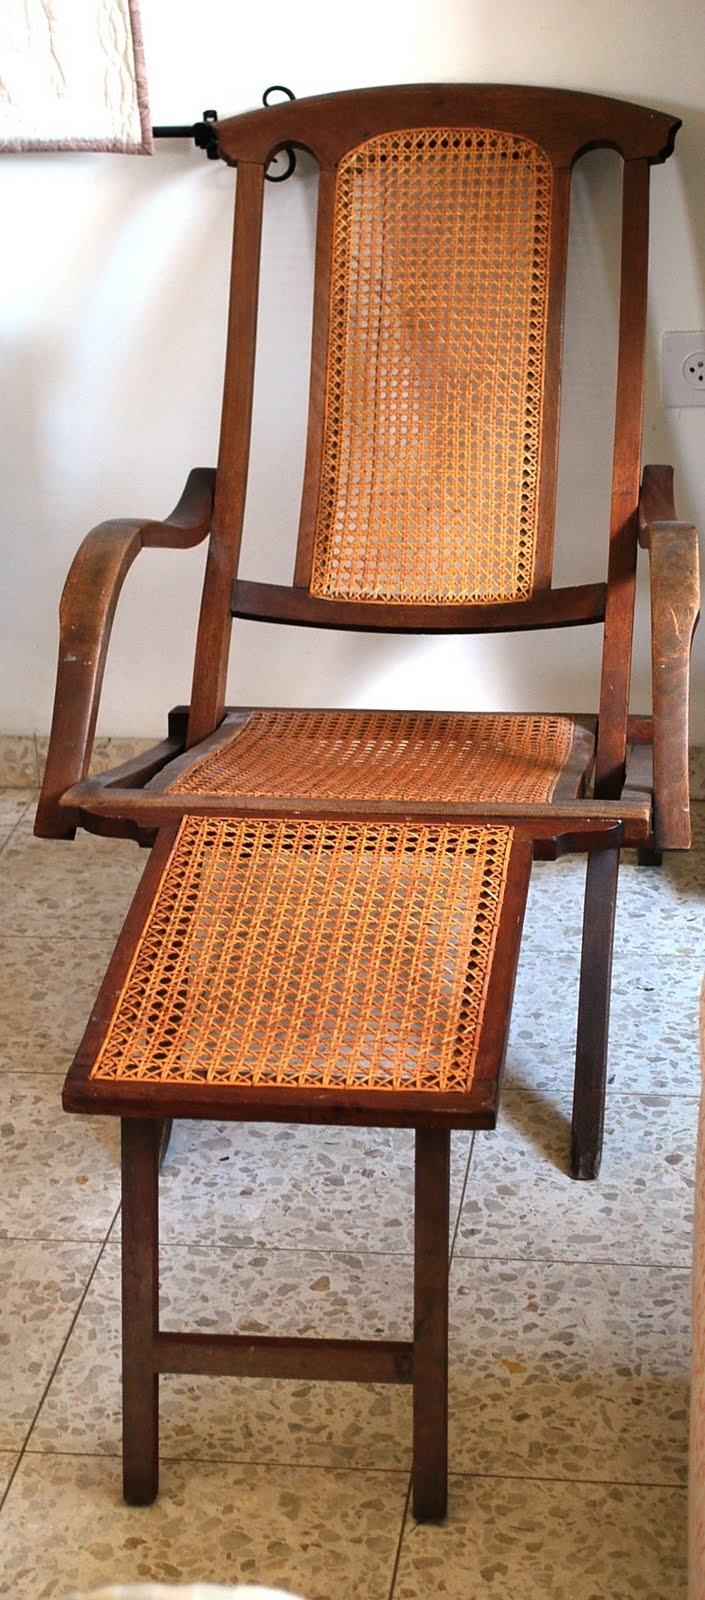 vintage steamer chair - 38 Best Woodworking - Chairs Images On Pinterest Antique